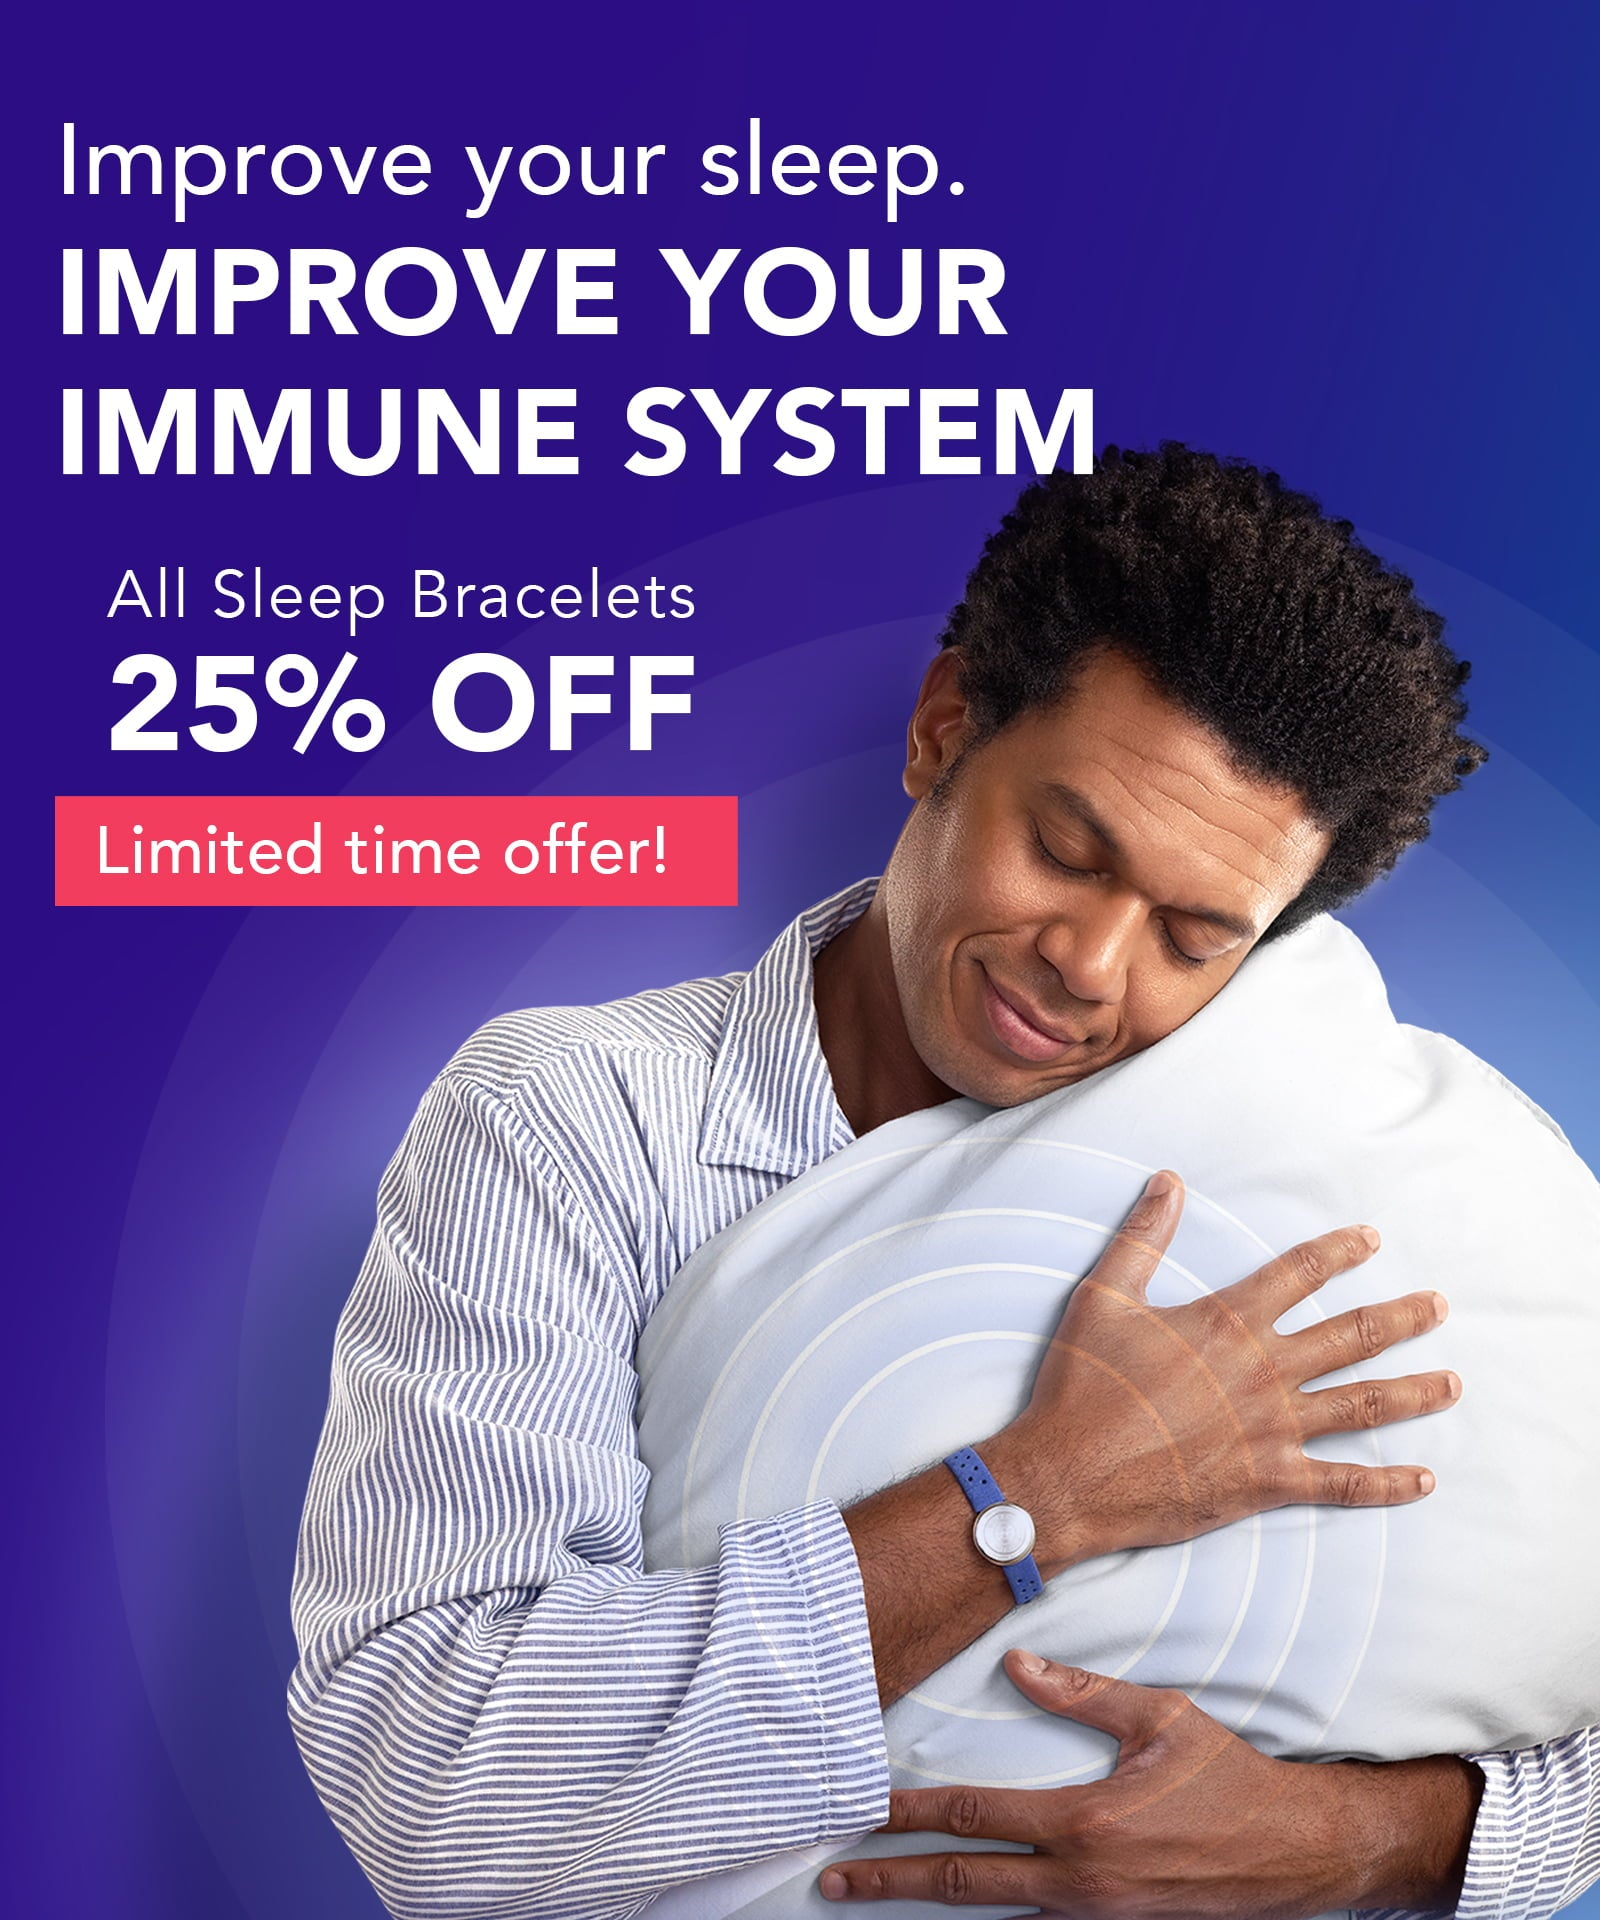 LIMITED TIME OFFER! Improve your Immune System. All Sleep Bracelets 25% OFF